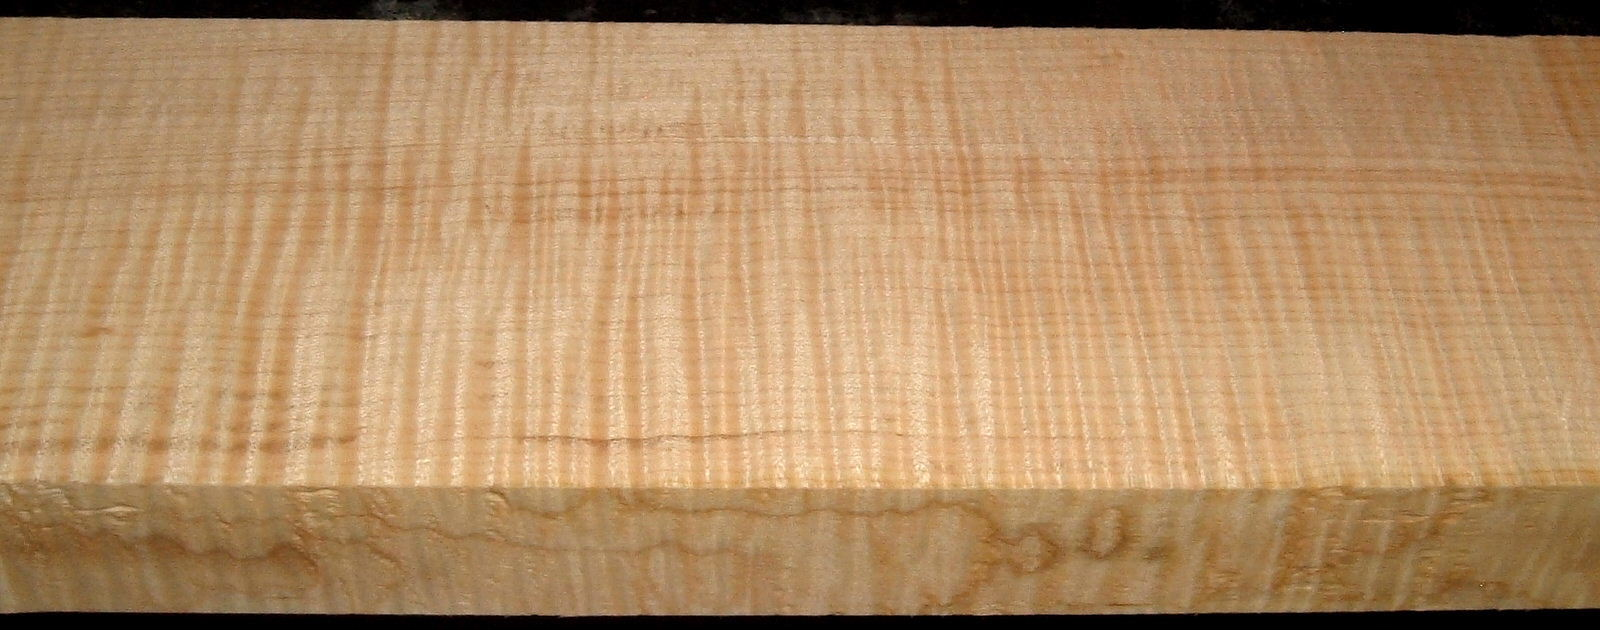 QS2001-2, 1-7/16x4-1/2x35, Quartersawn Curly Maple